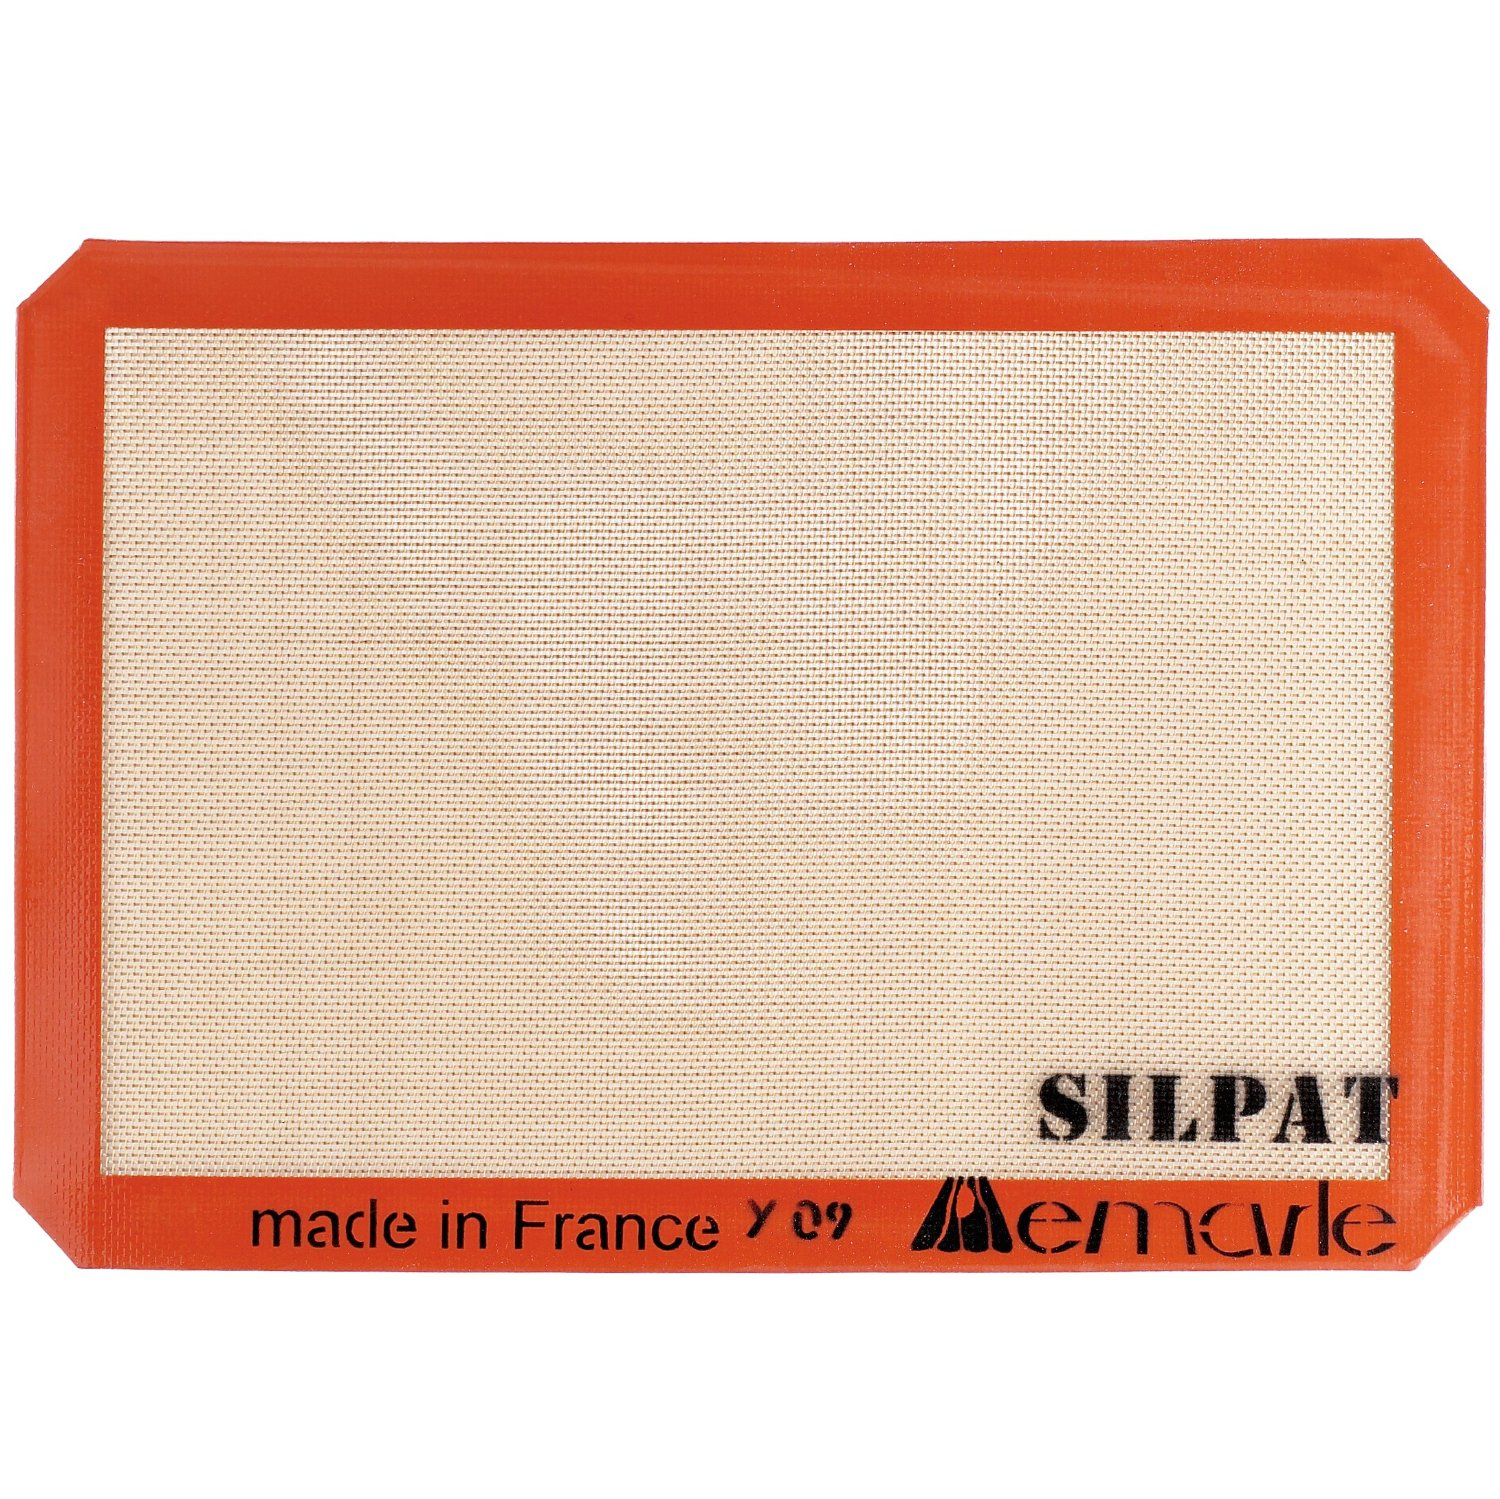 healthy-gifts-silpat